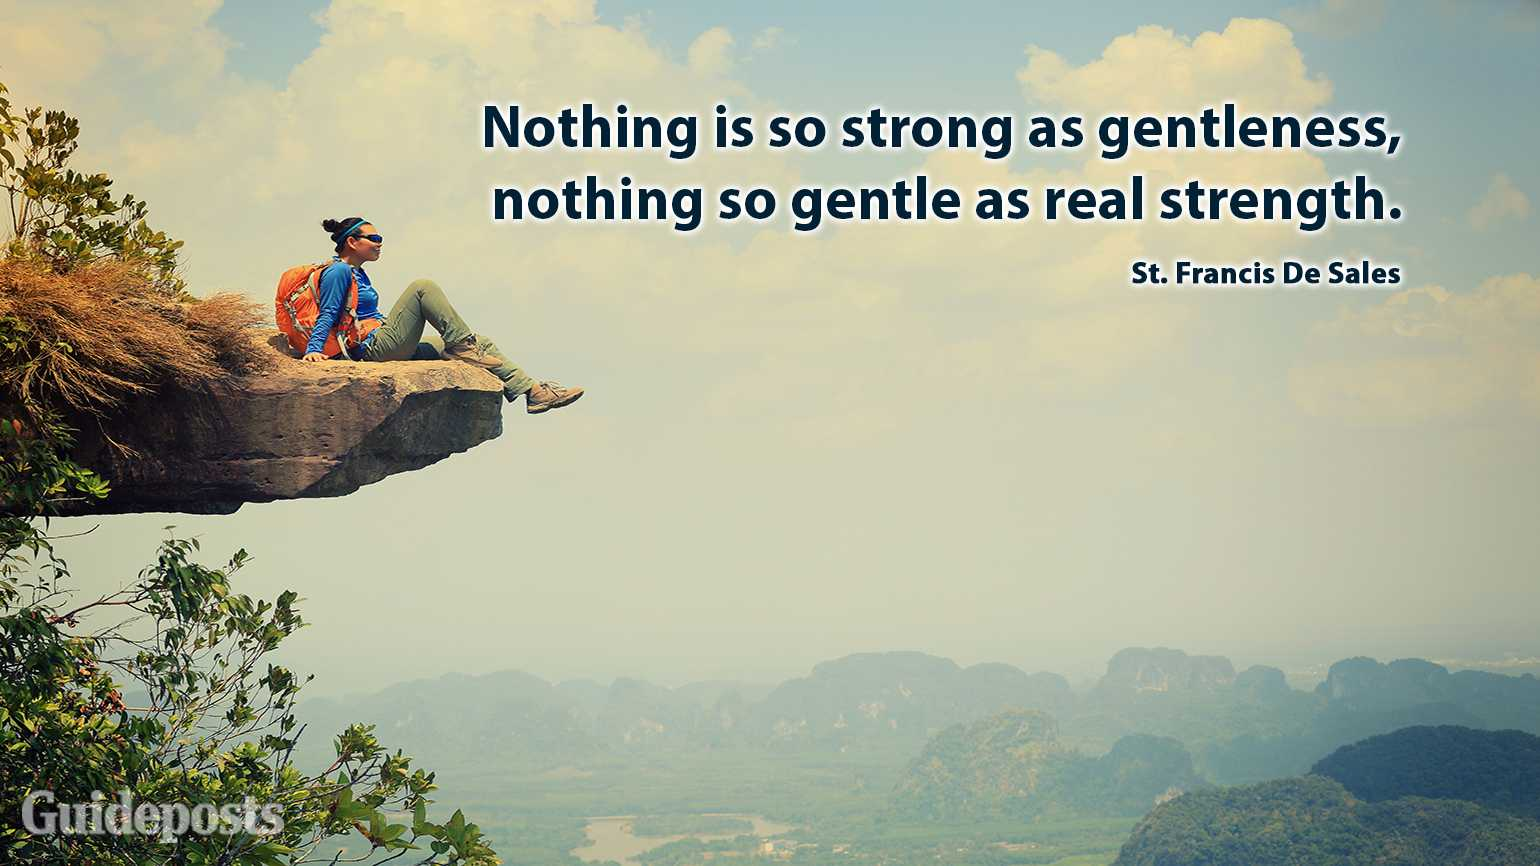 5 Inspiring Quotes About Strength | Guideposts